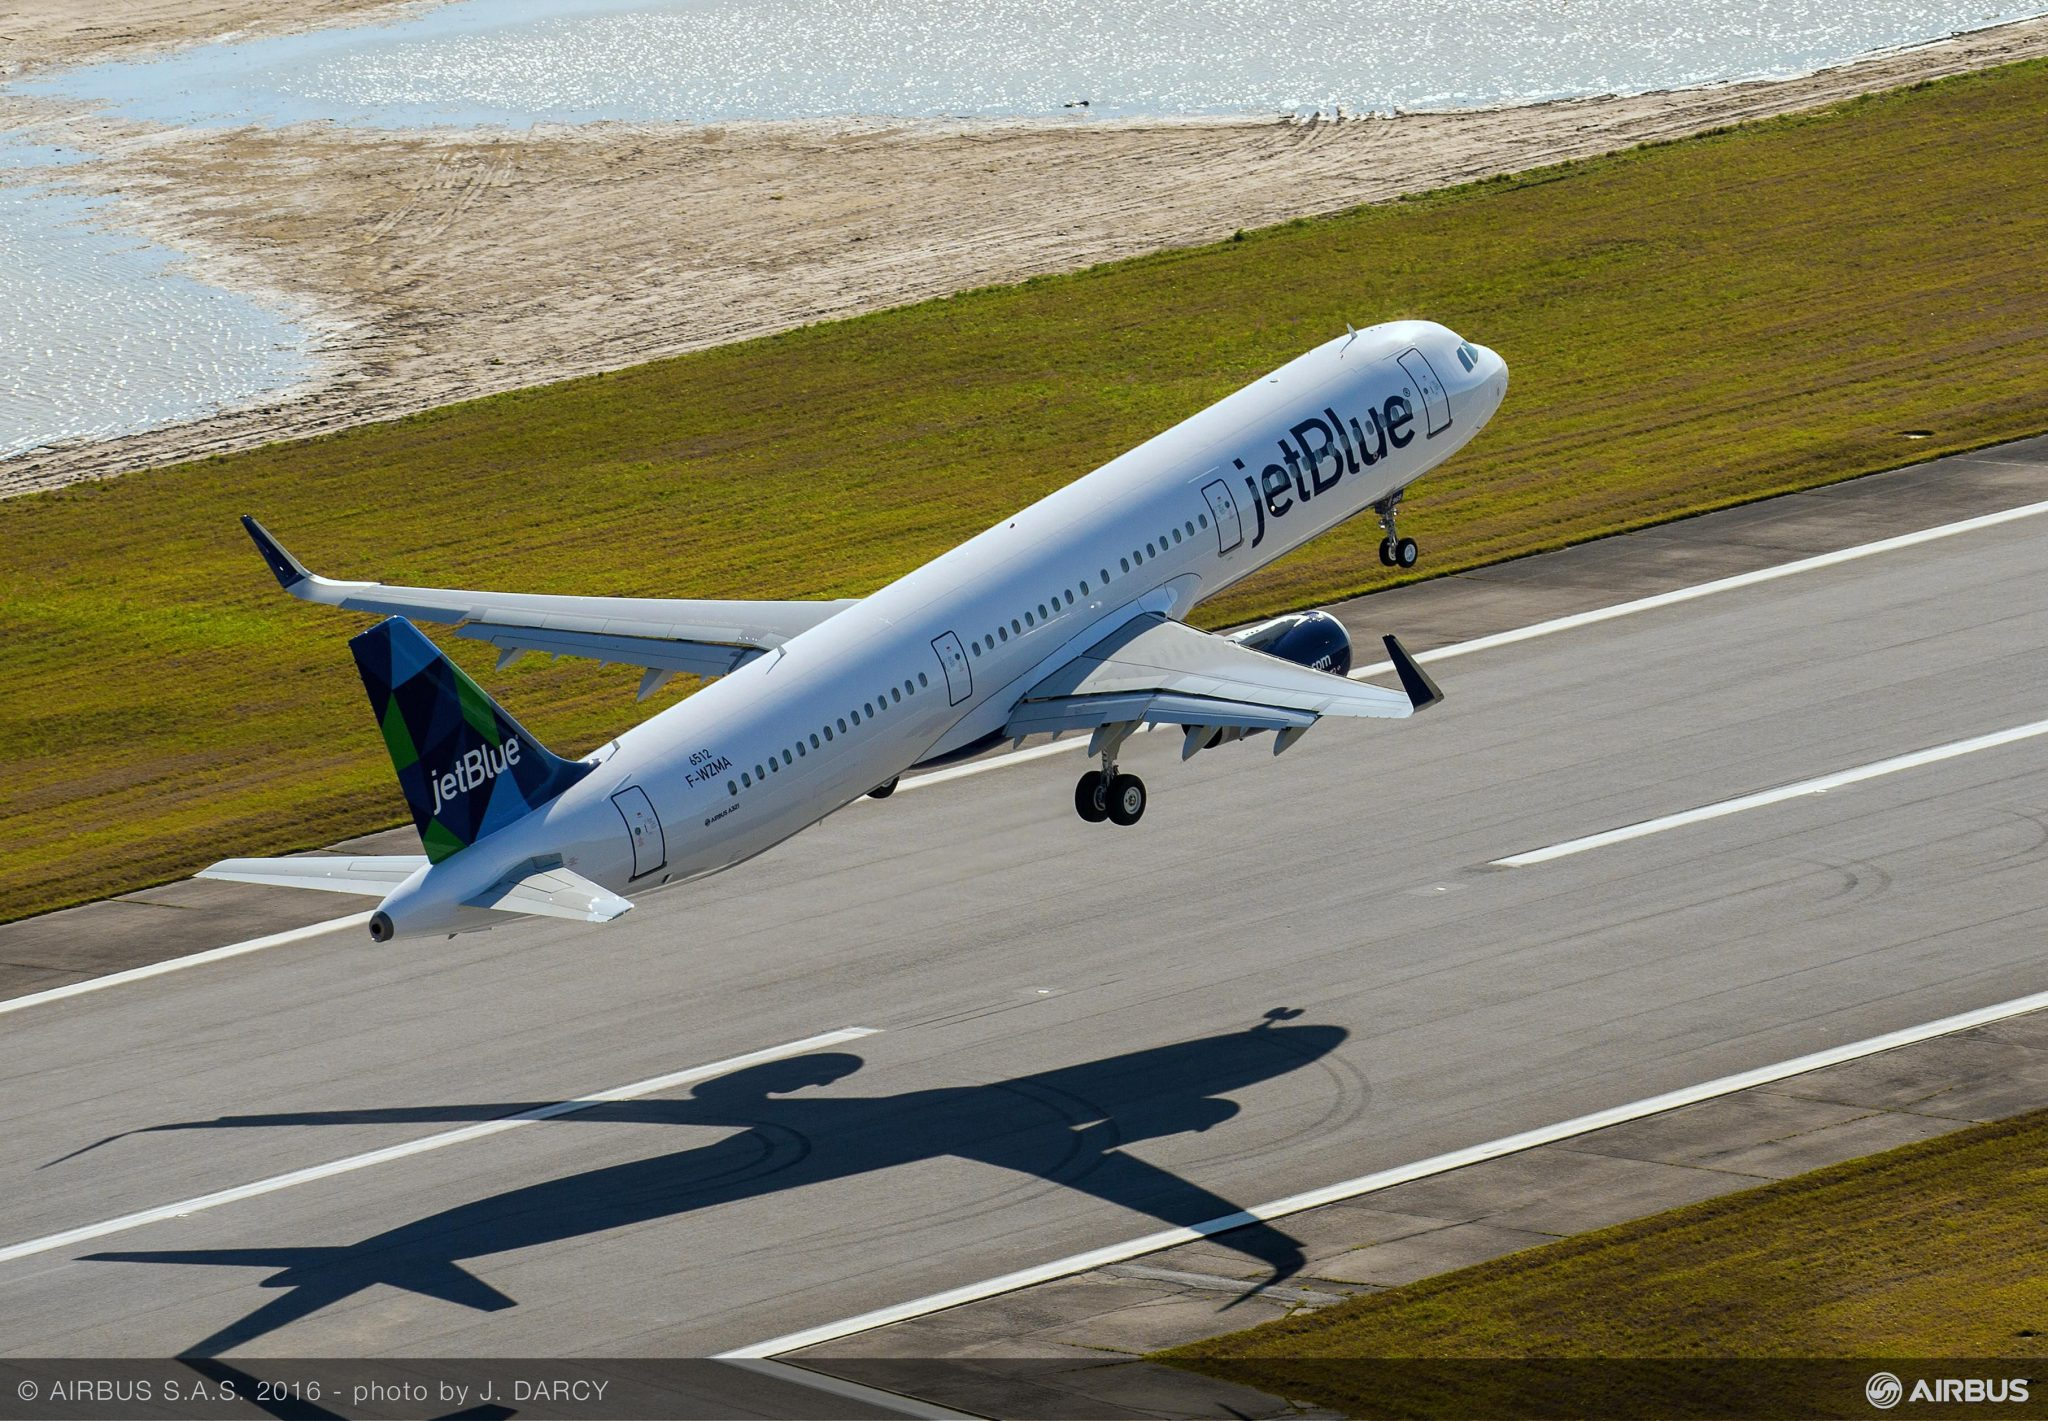 JetBlue's First A321neo Arrives in New York